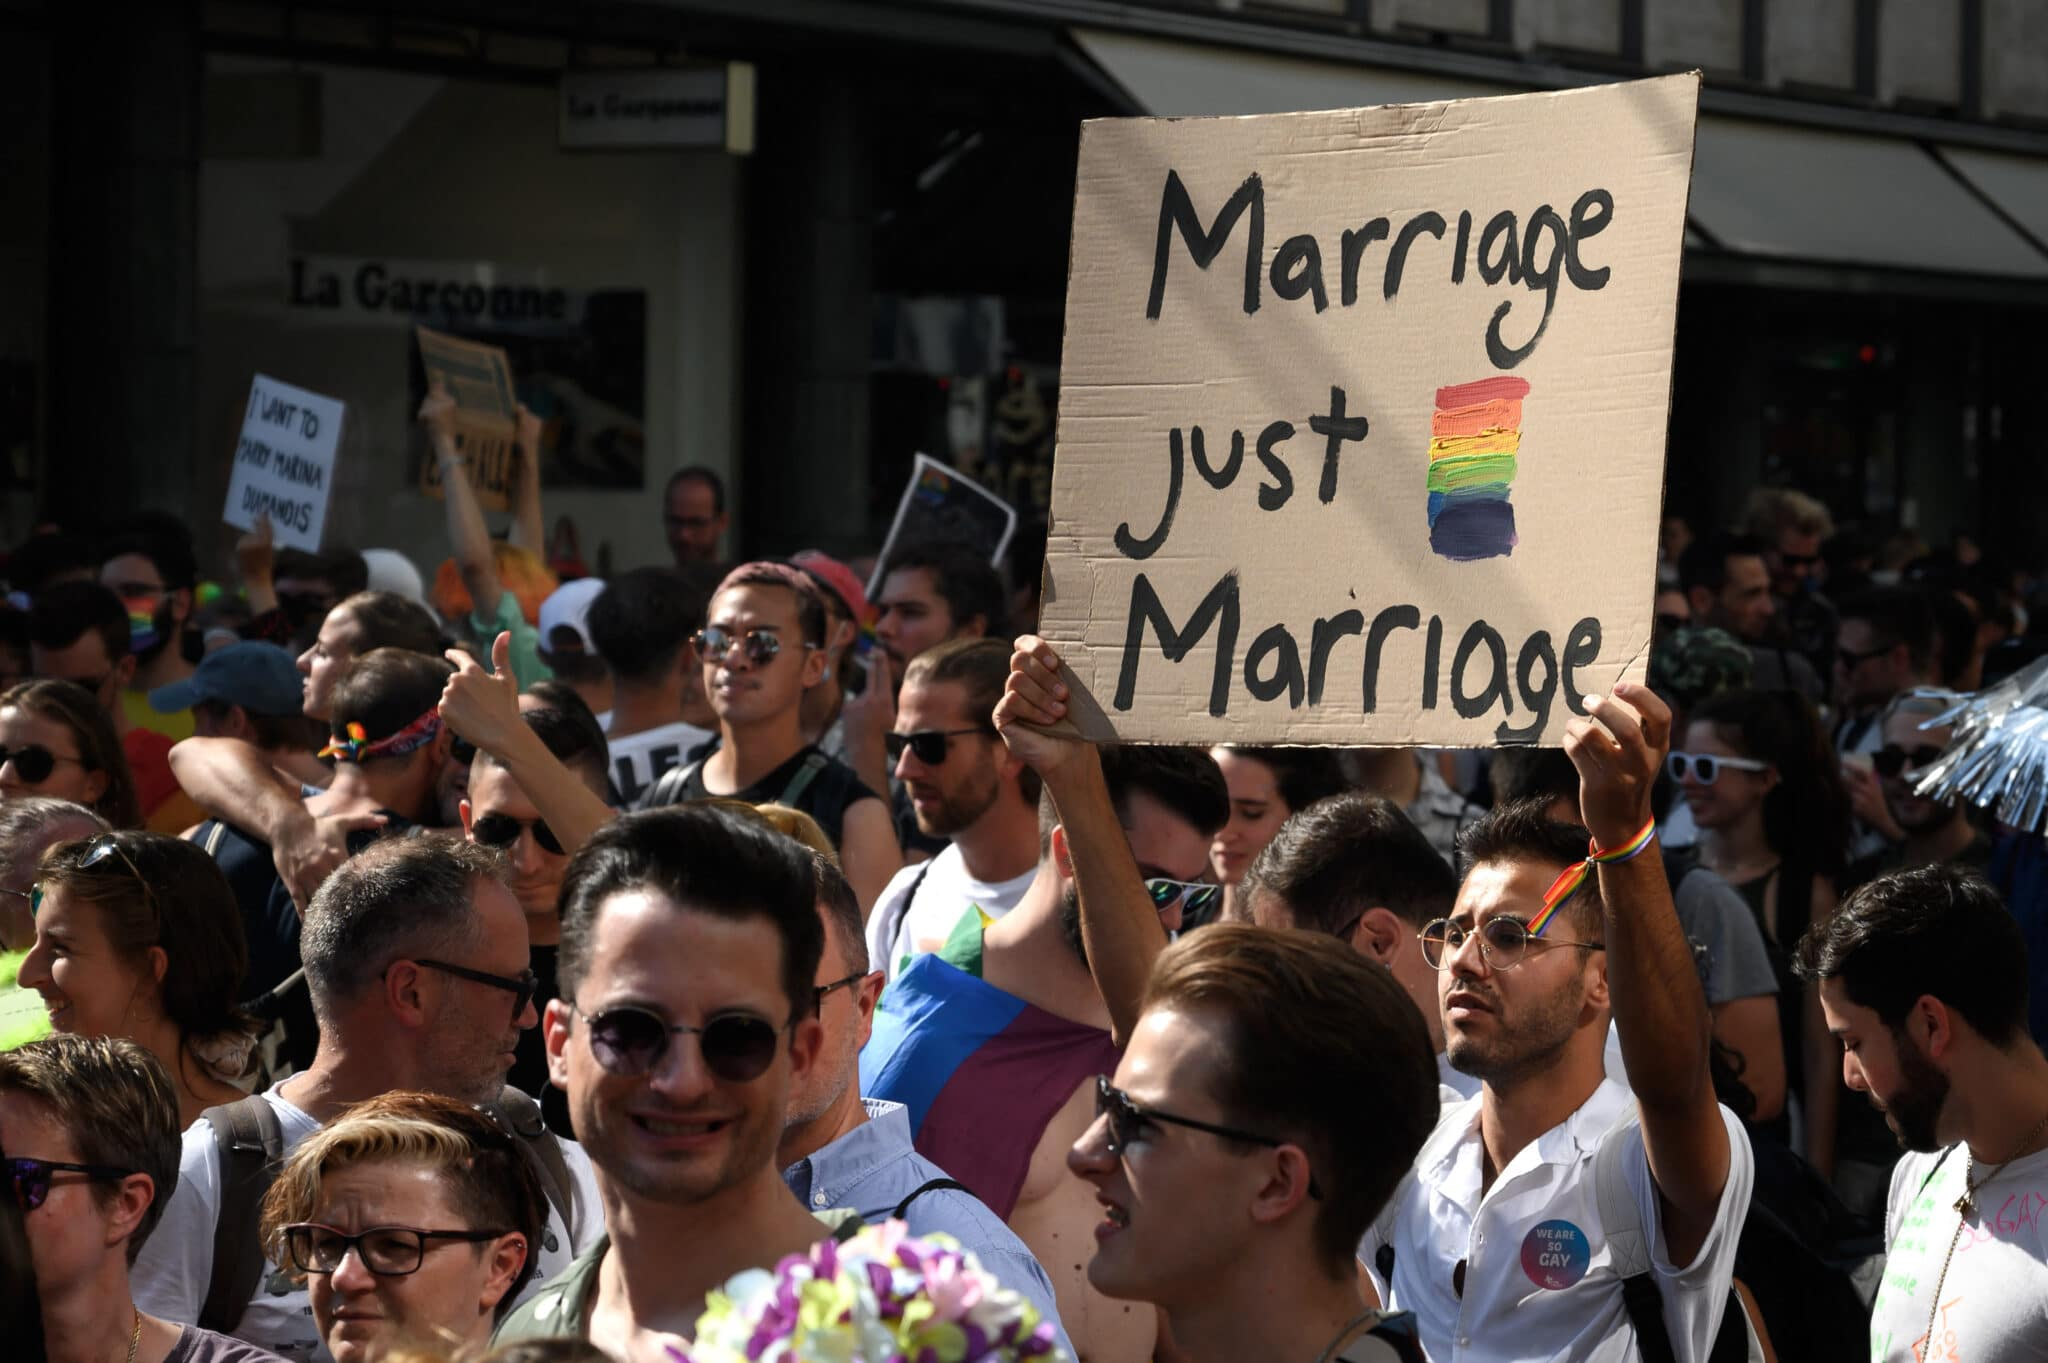 Switzerland prepares for historic marriage equality vote after long, bitter fight